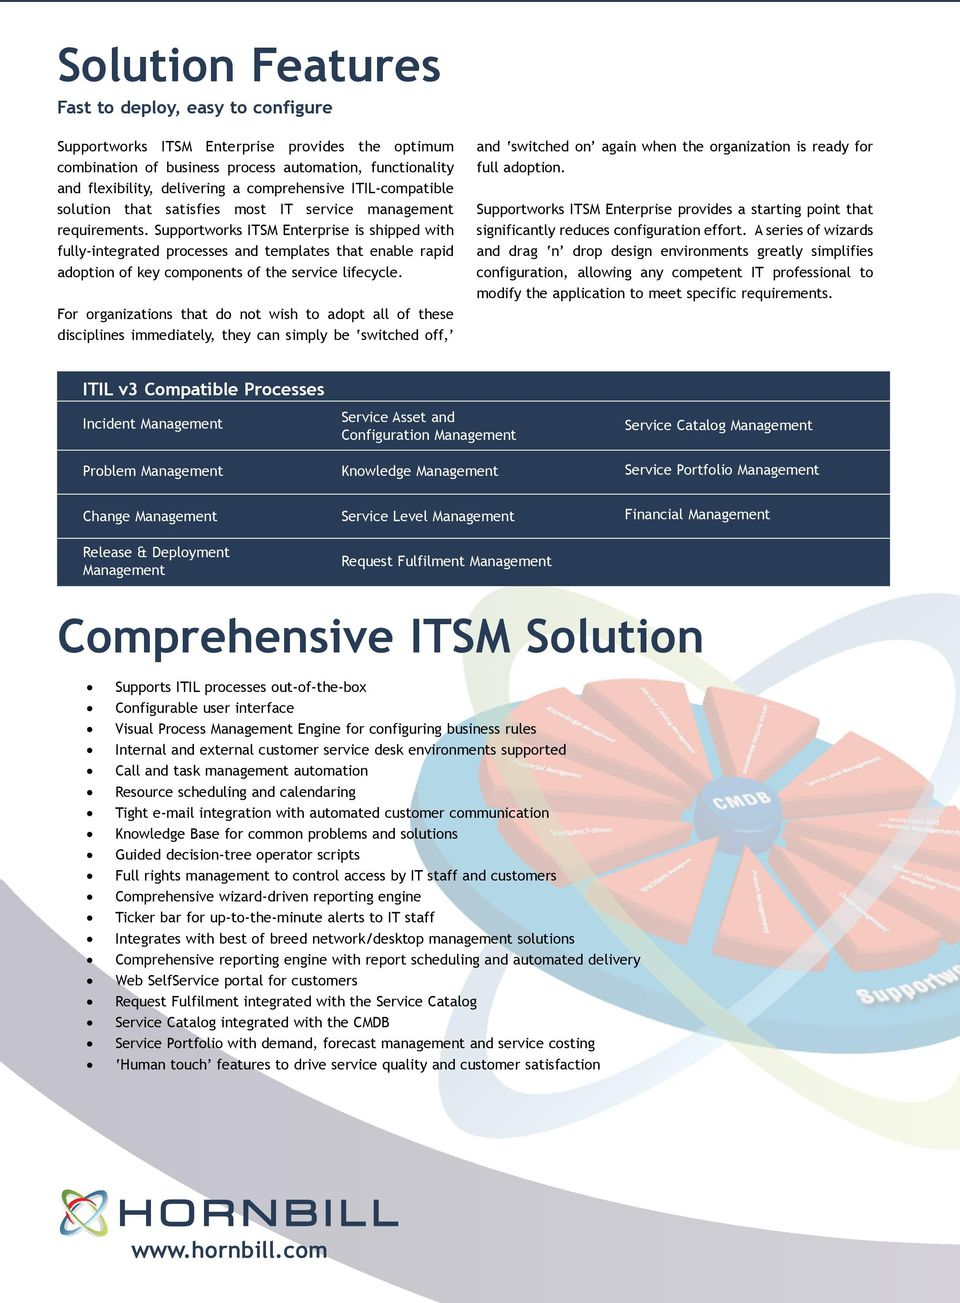 Supportworks ITSM Enterprise is shipped with fully-integrated processes and templates that enable rapid adoption of key components of the service lifecycle.